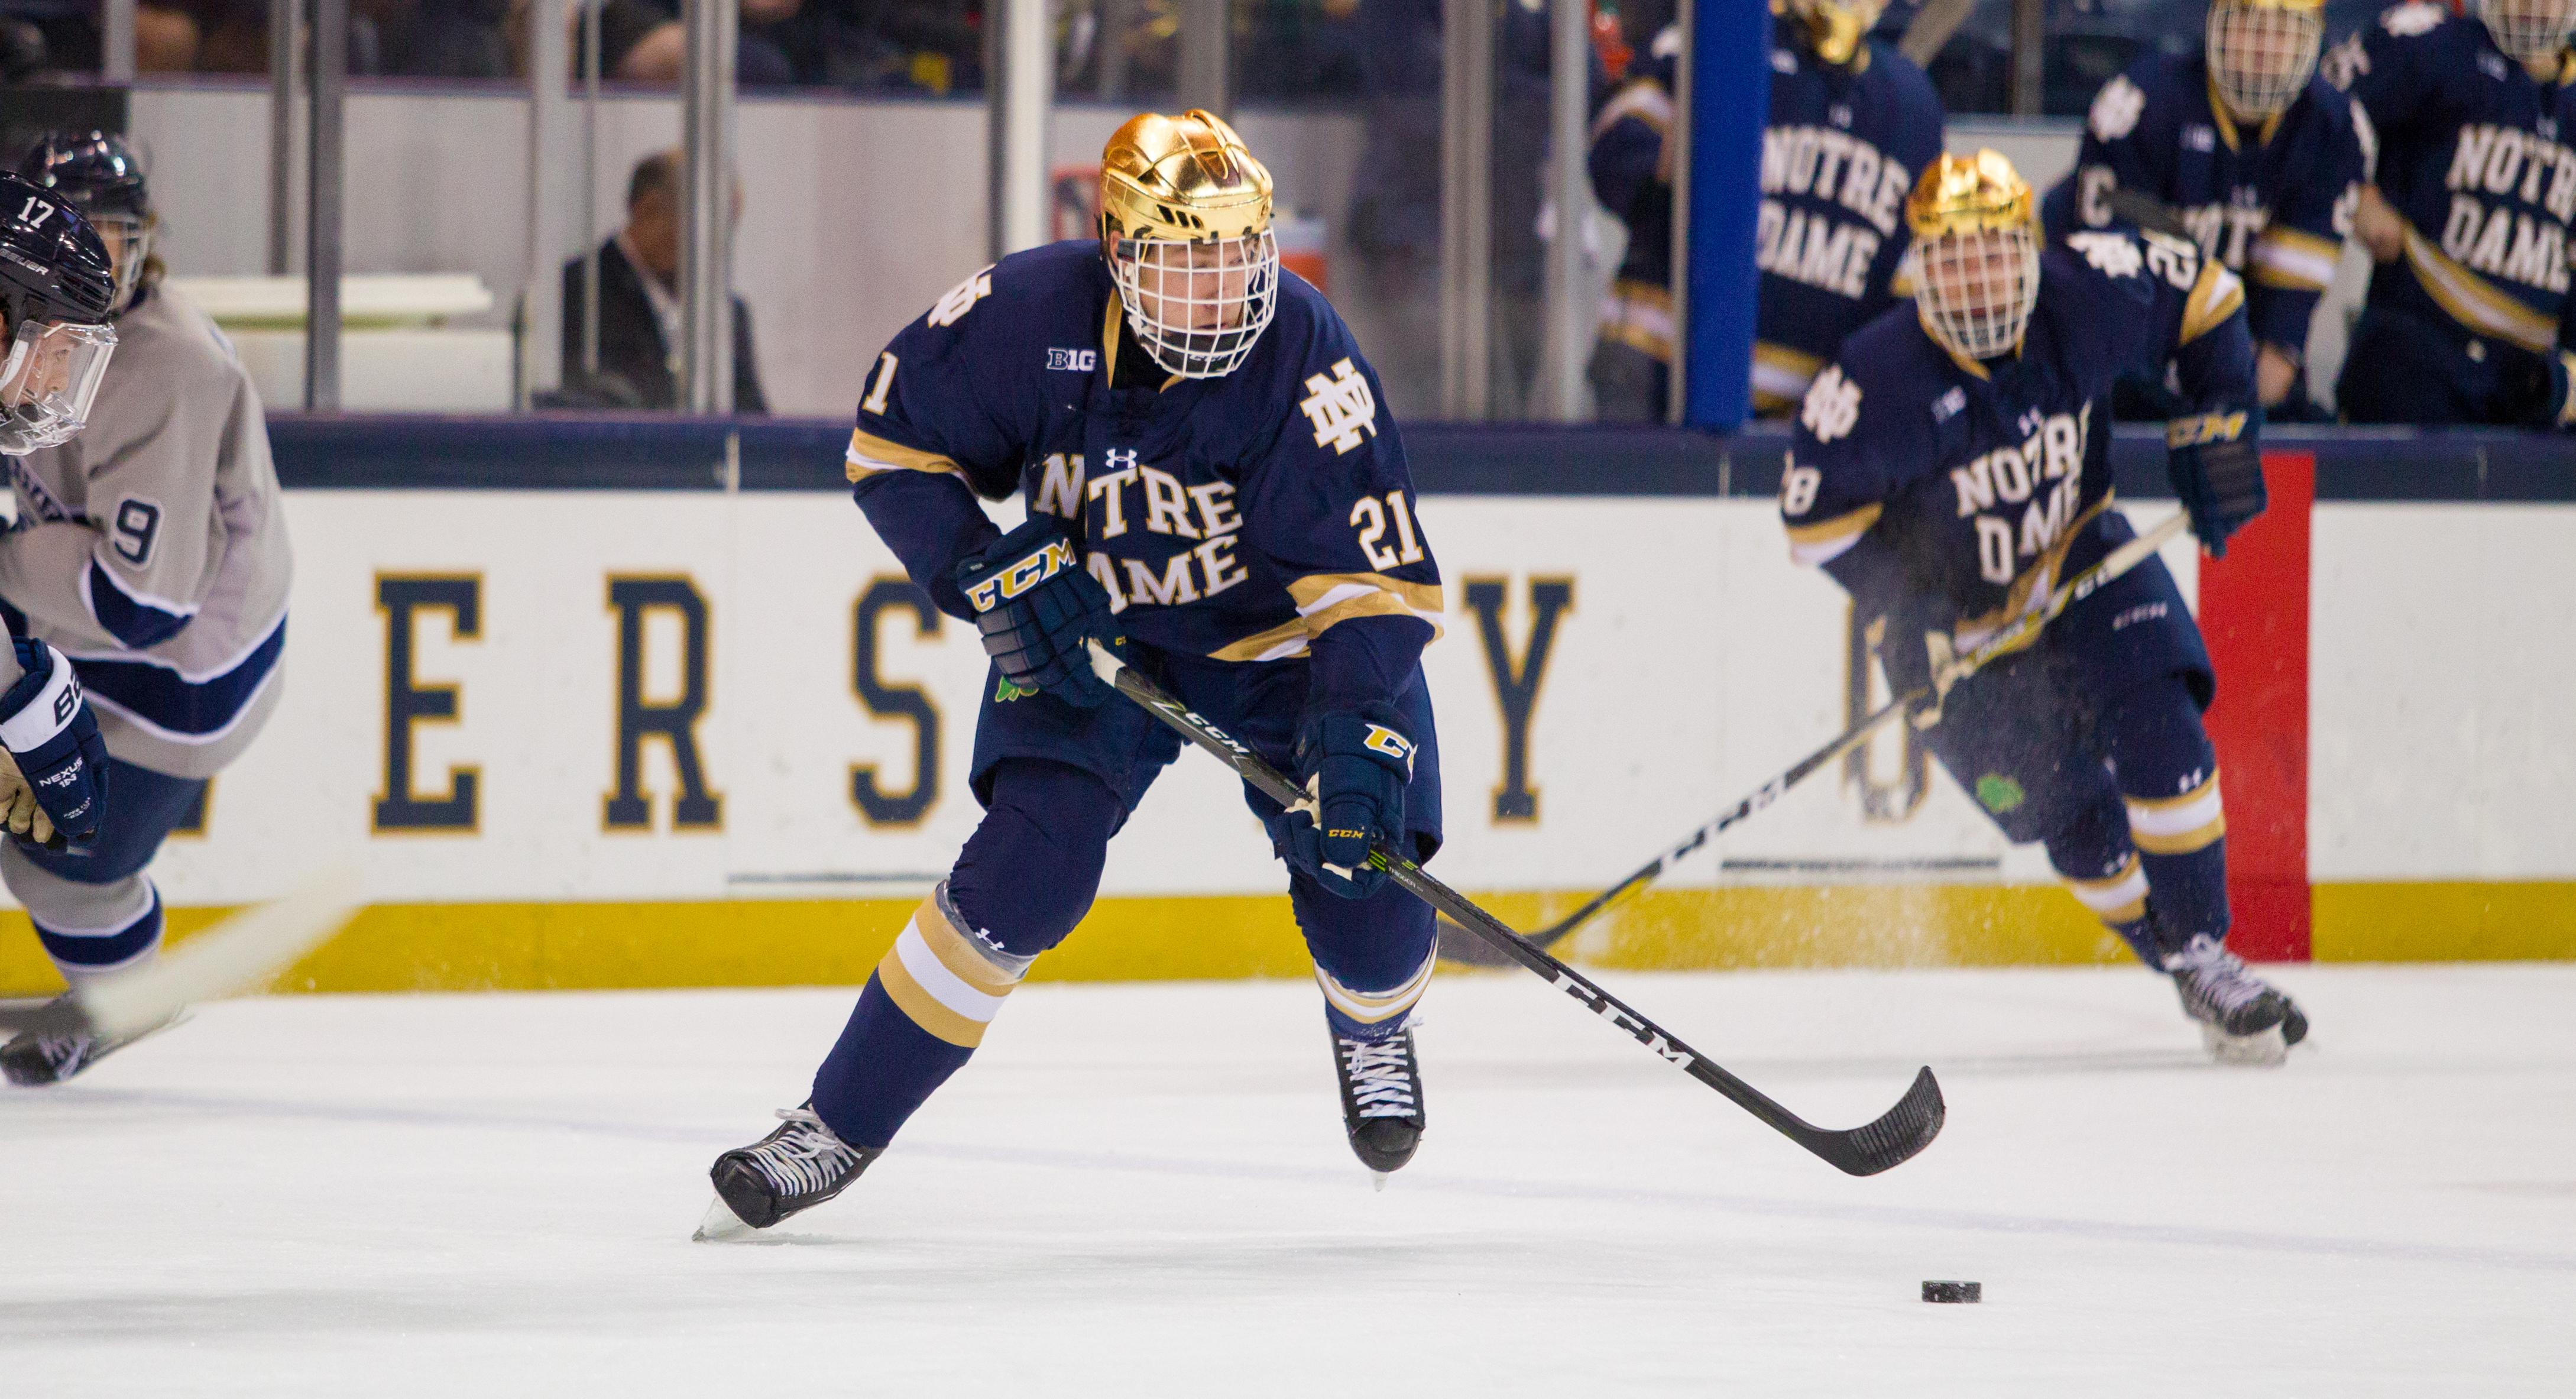 Joe Wegwerth with the University of Notre Dame (photo courtesy of Fighting Irish Media)